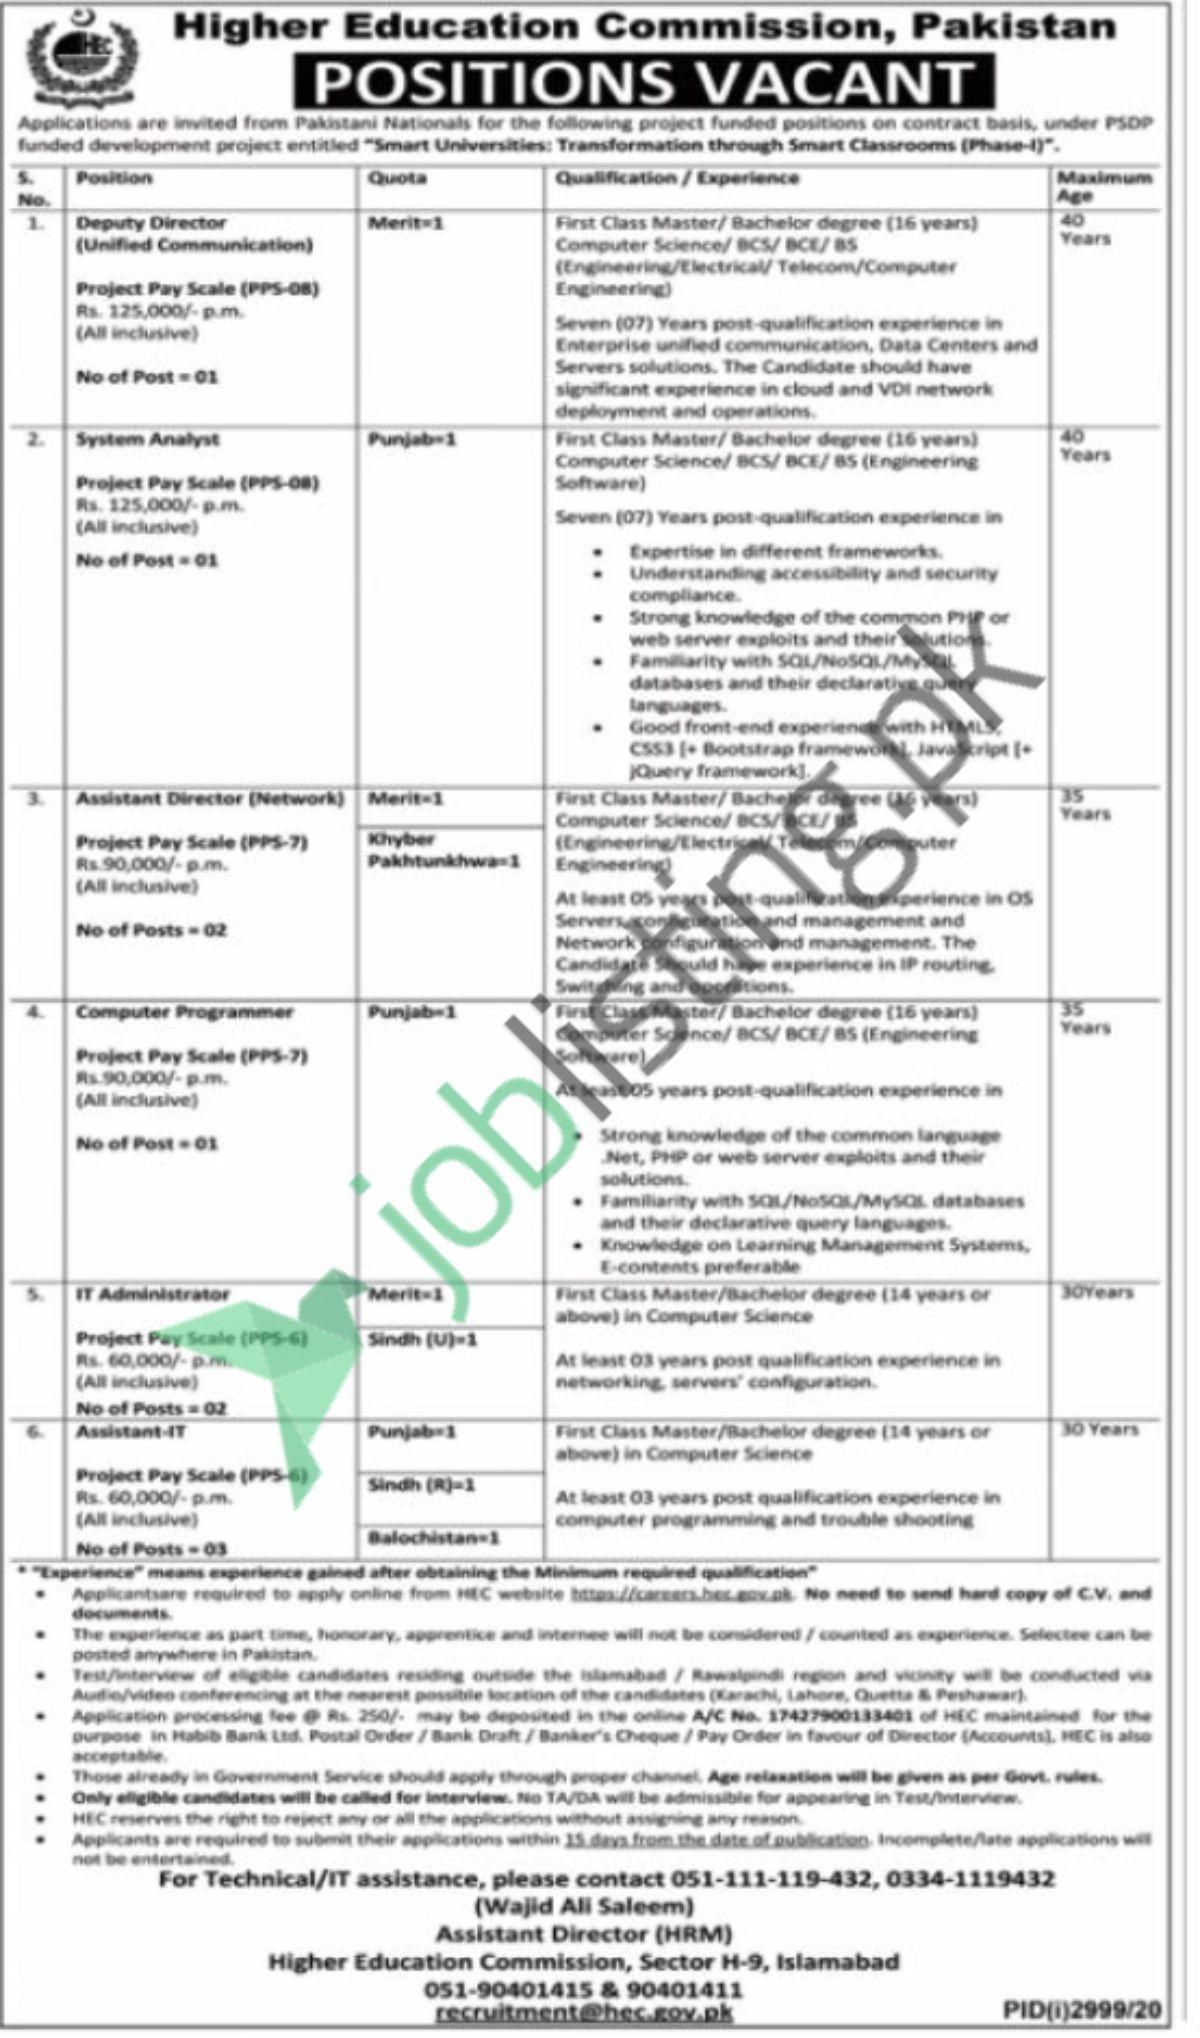 Latest HEC Jobs 2020 Advertisement for IT Administrator